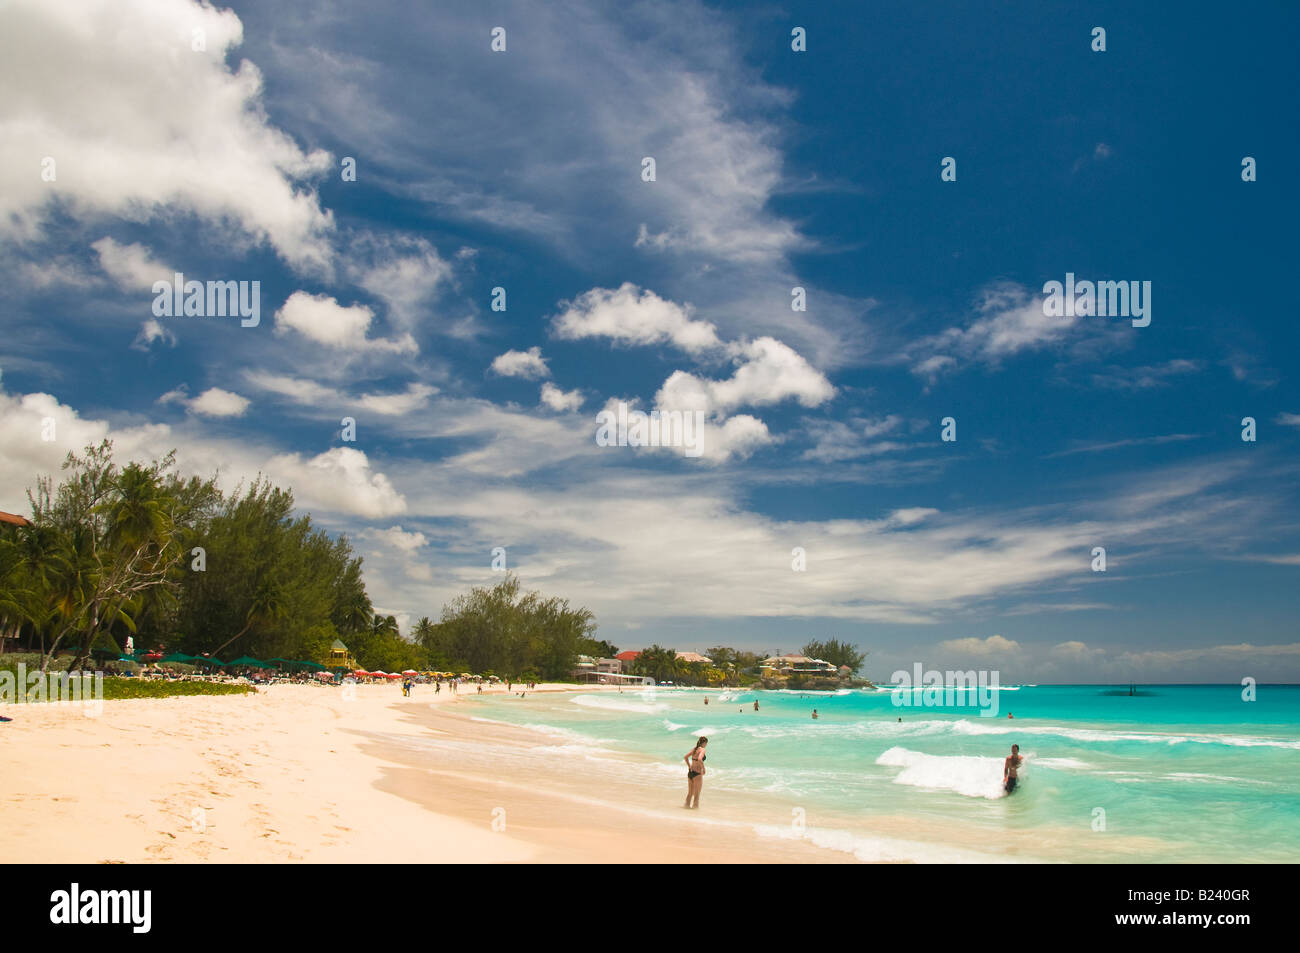 The blue sky white clouds and the turquoise waters a perfect beach setting at Rockley Beach in Barbados March 2008 - Stock Image